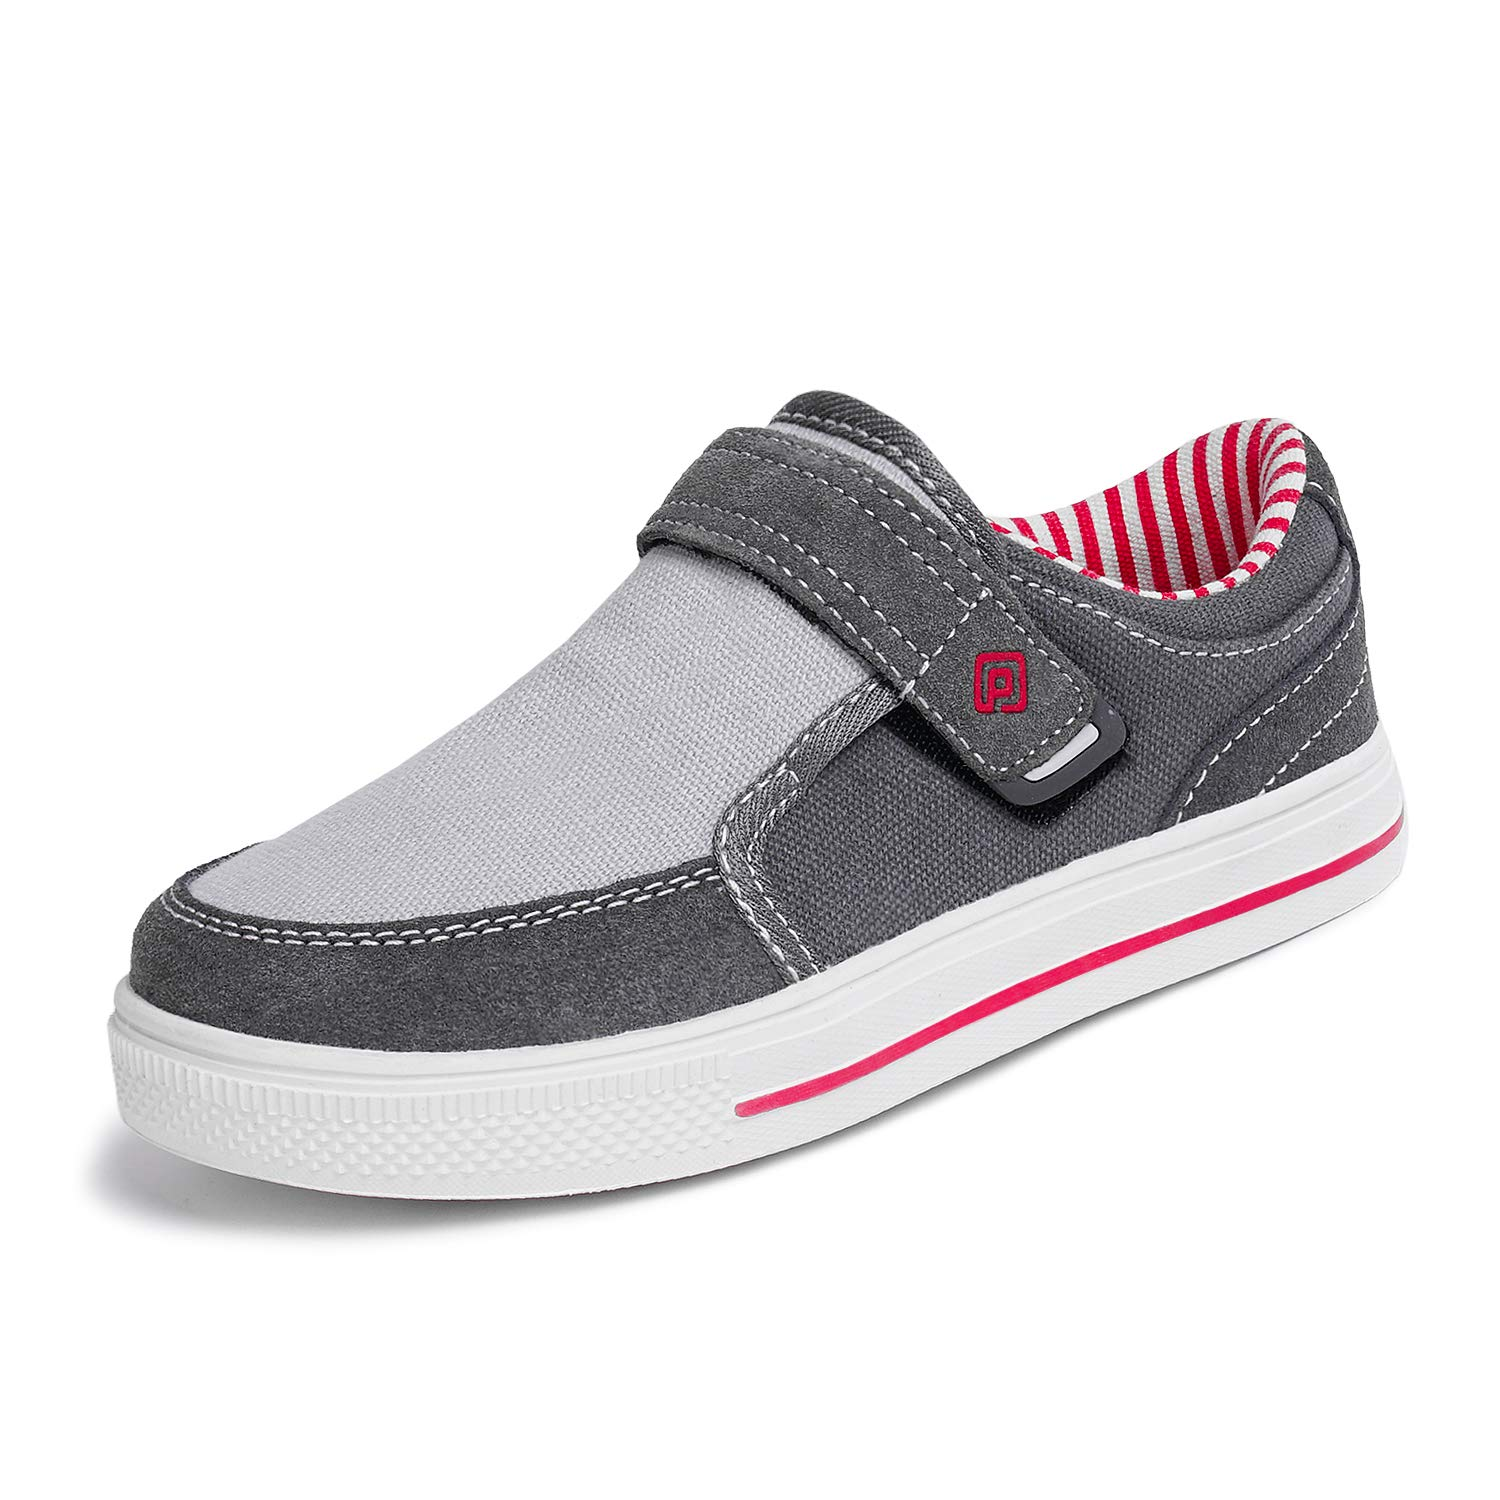 Toddler//Little Kid//Big Kid DREAM PAIRS Boys Girls Loafer Athletic Running Shoes Casual Sneakers